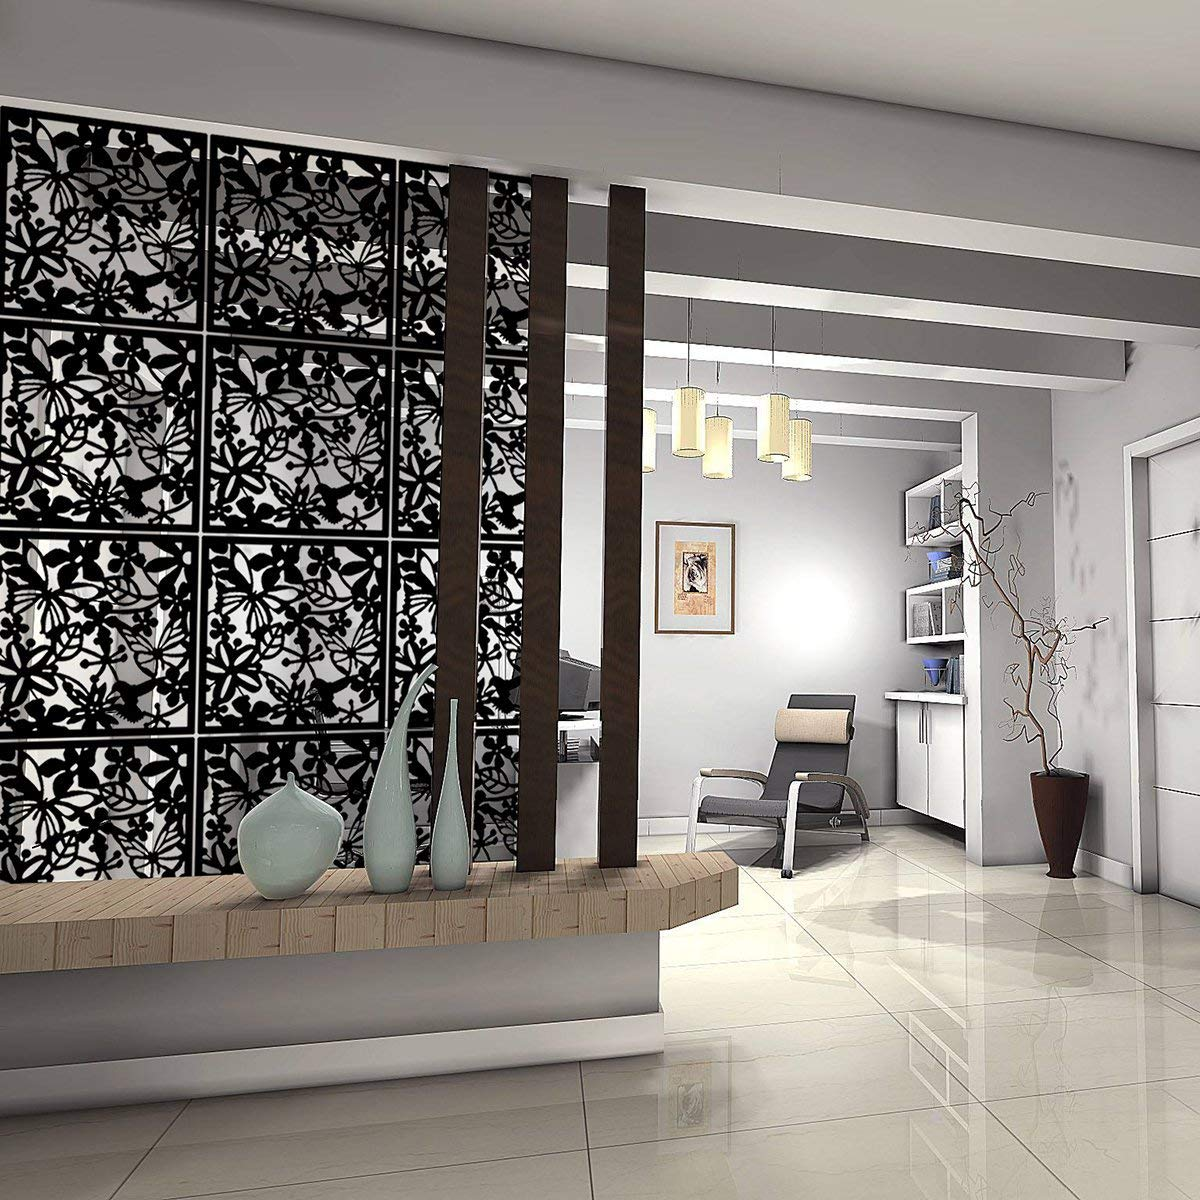 Kernorv Hanging Room Divider Made of Environmentally PVC, 12 PCS Partitions Panel Screen for Decorating Bedroom, Dining, Study and Sitting-Room, Hotel, Bar and Restaurant. (12, Black) by Kernorv